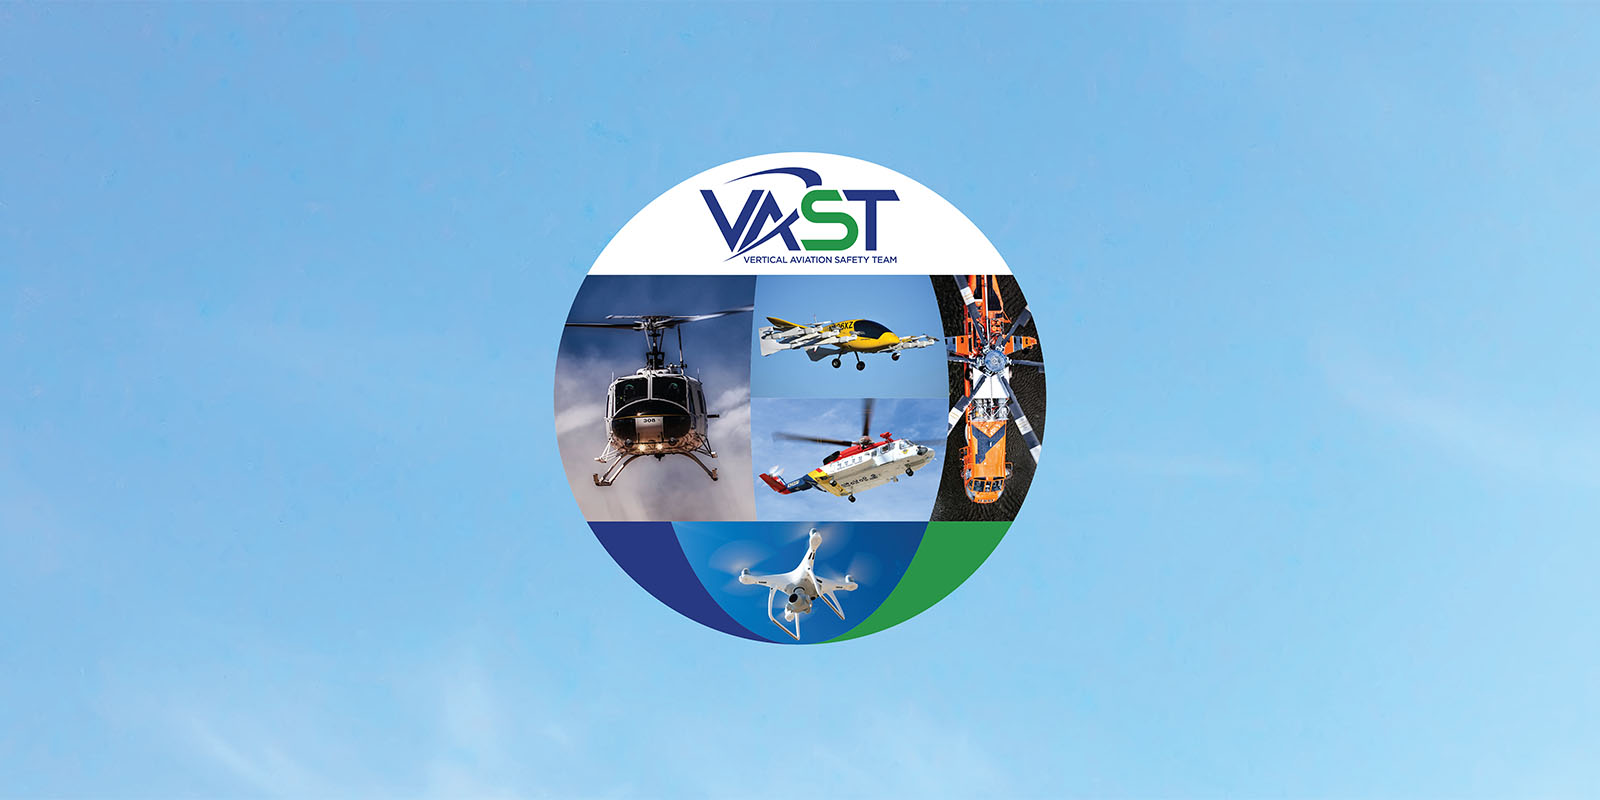 Refocused Industry Safety Program Includes All Vertical Aviation Aircraft